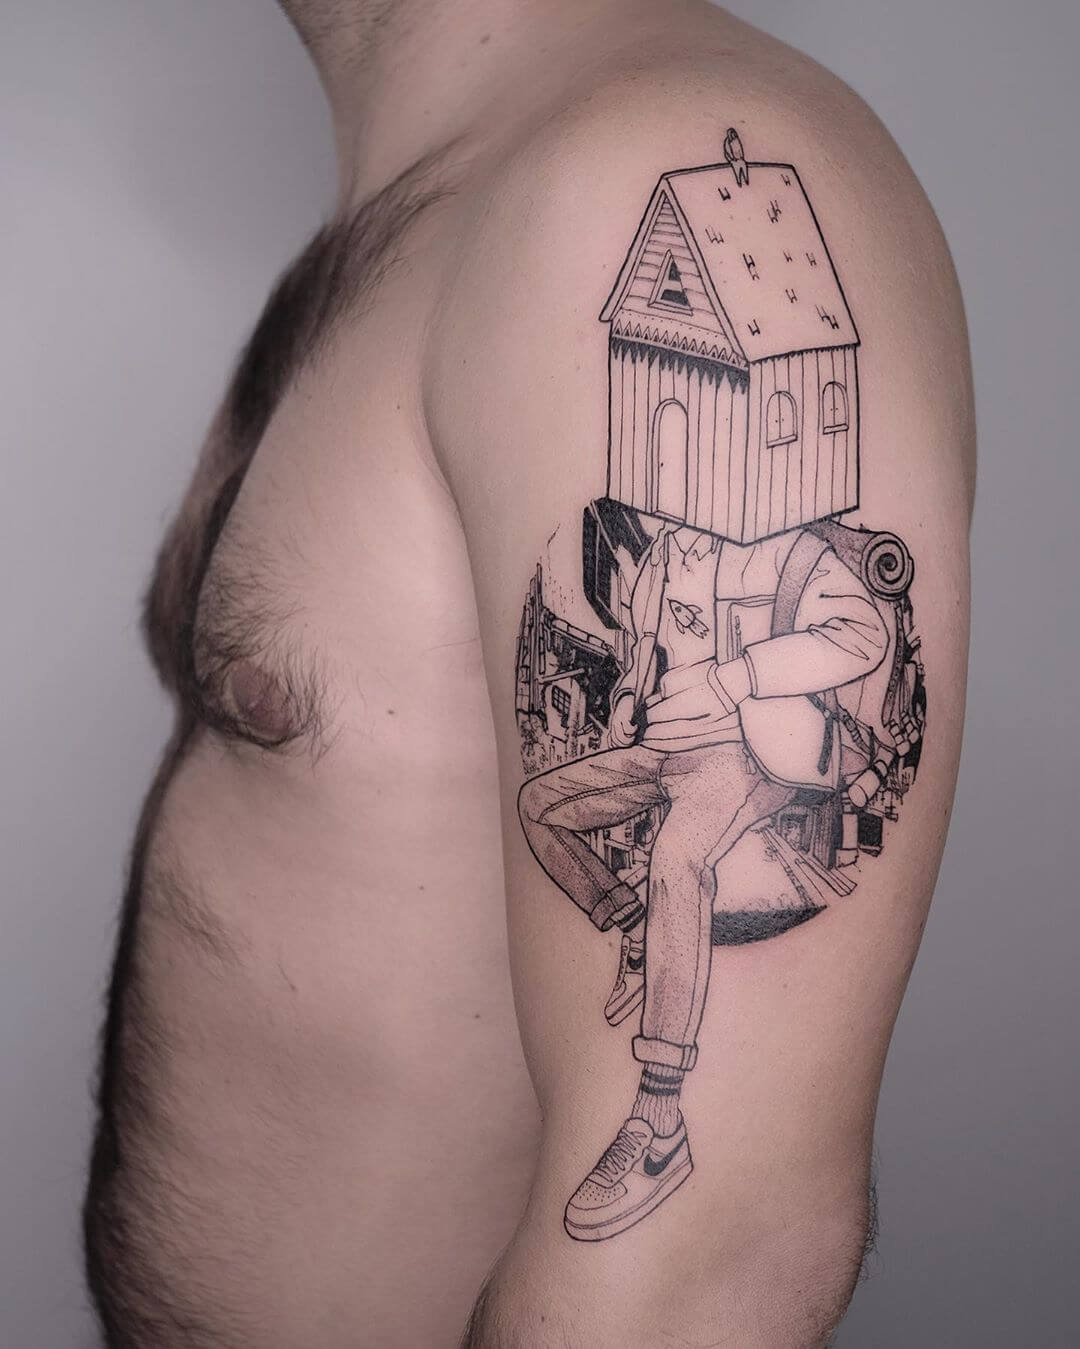 Traveling man with birdhouse for a head, tattoo Serena Caponera